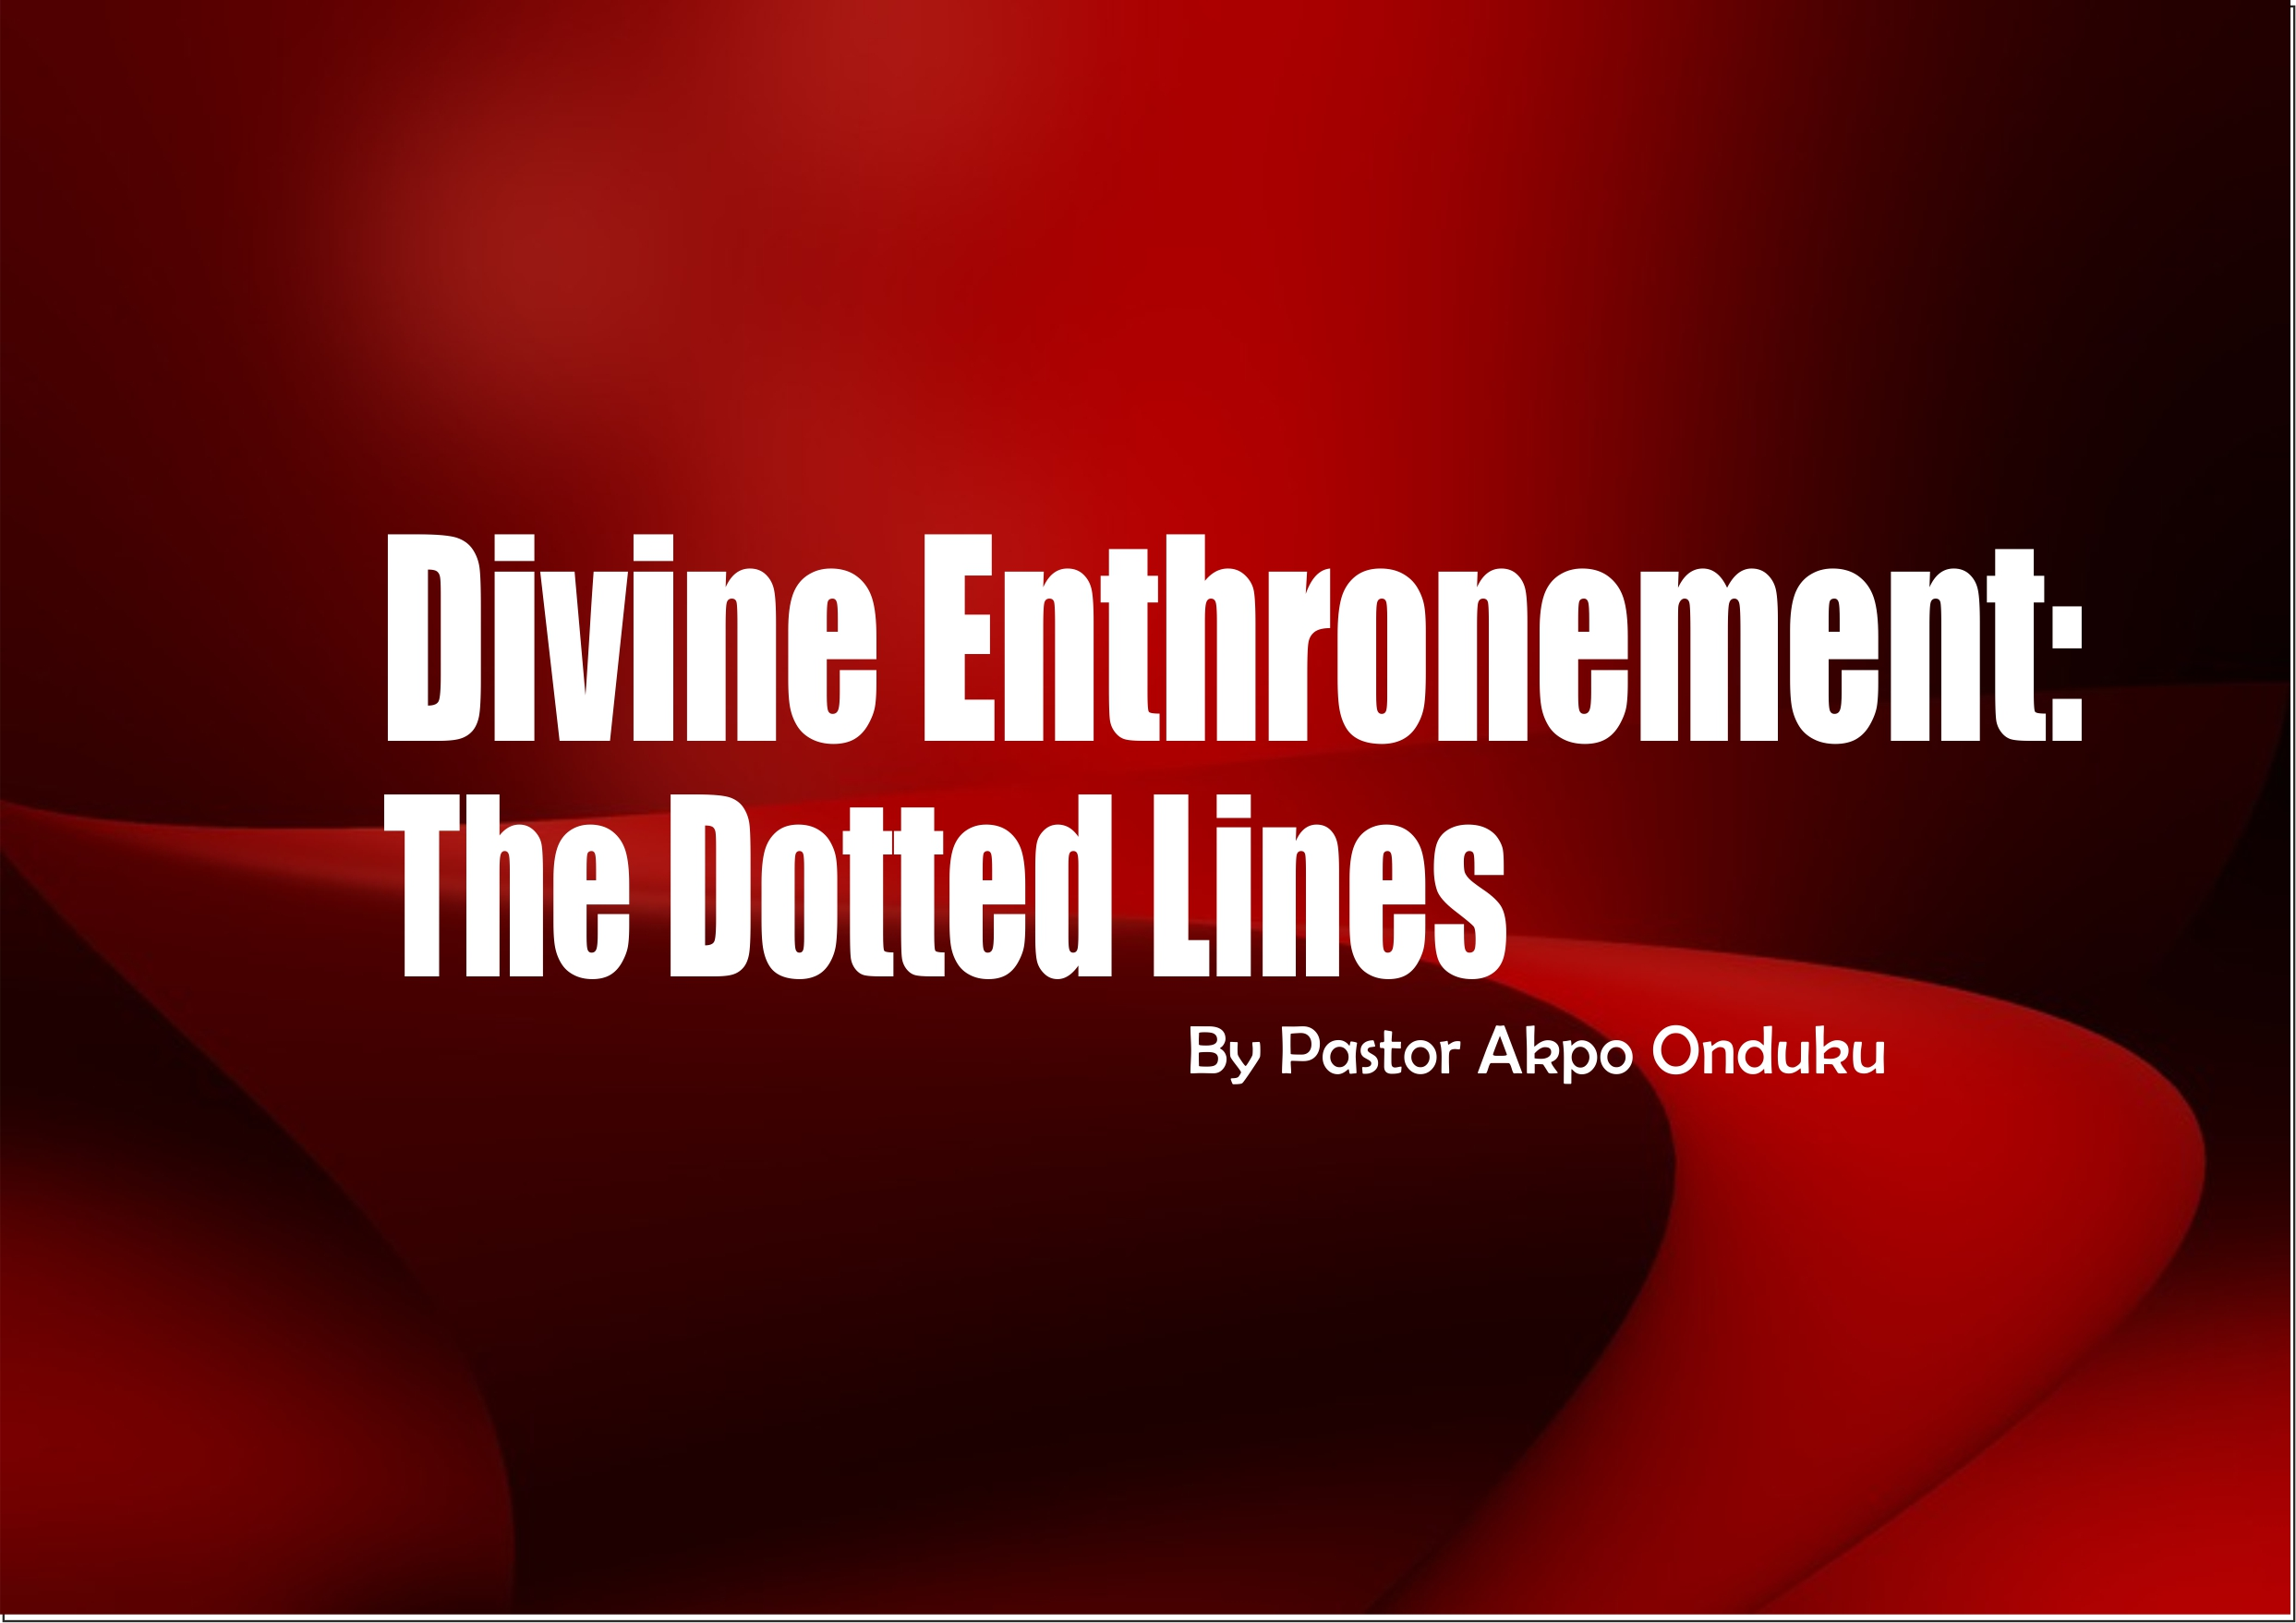 Divine Enthronement: The Dotted Lines, by Pastor Akpo Onduku